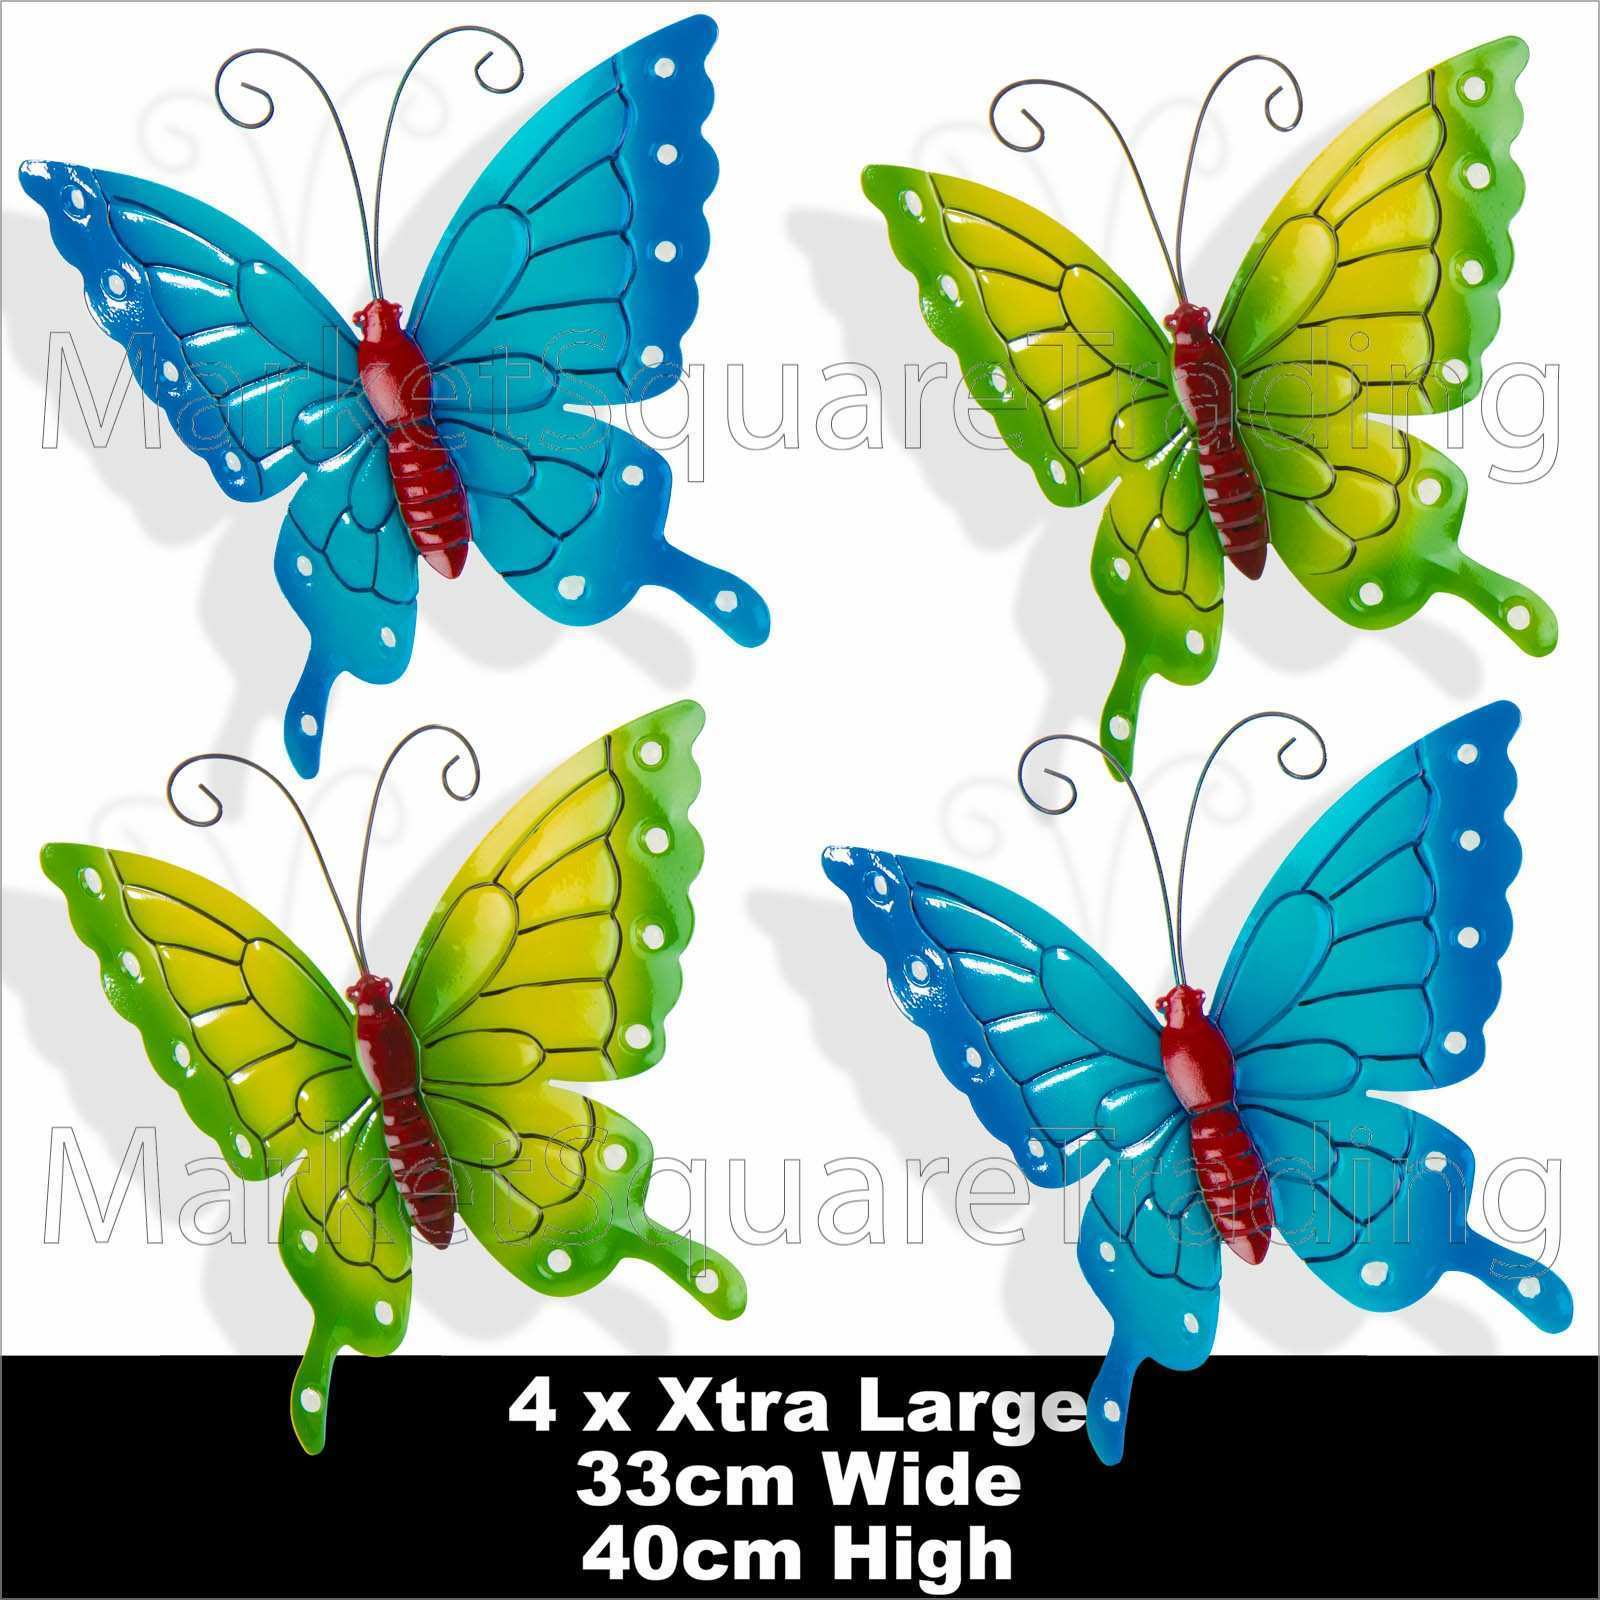 Charming Butterfly Garden Wall Art Ideas Exterior ideas 3D gaml